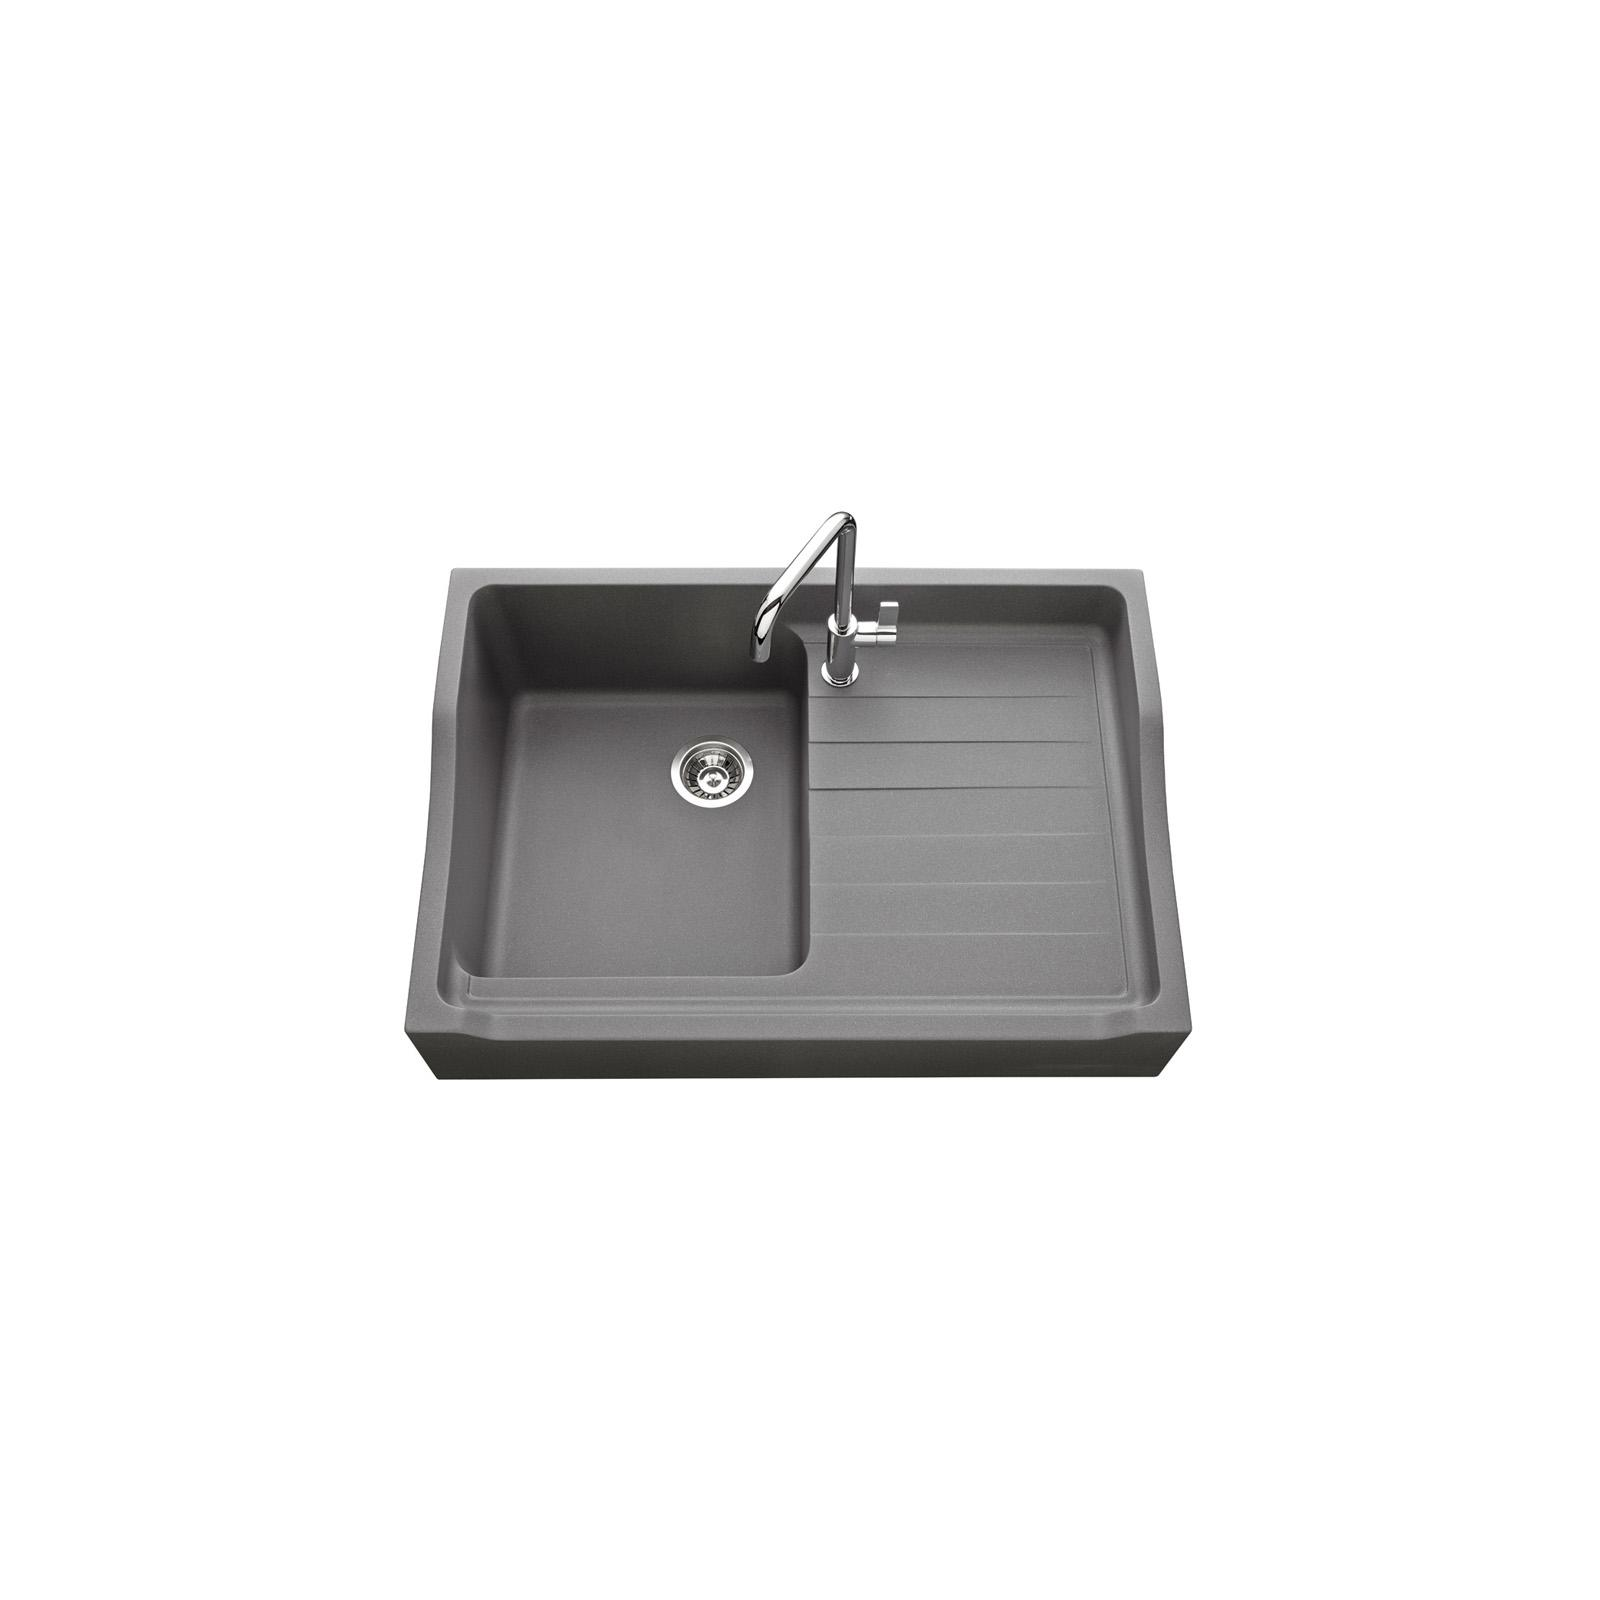 High-quality sink François 1er granit titanium gray - one bowl